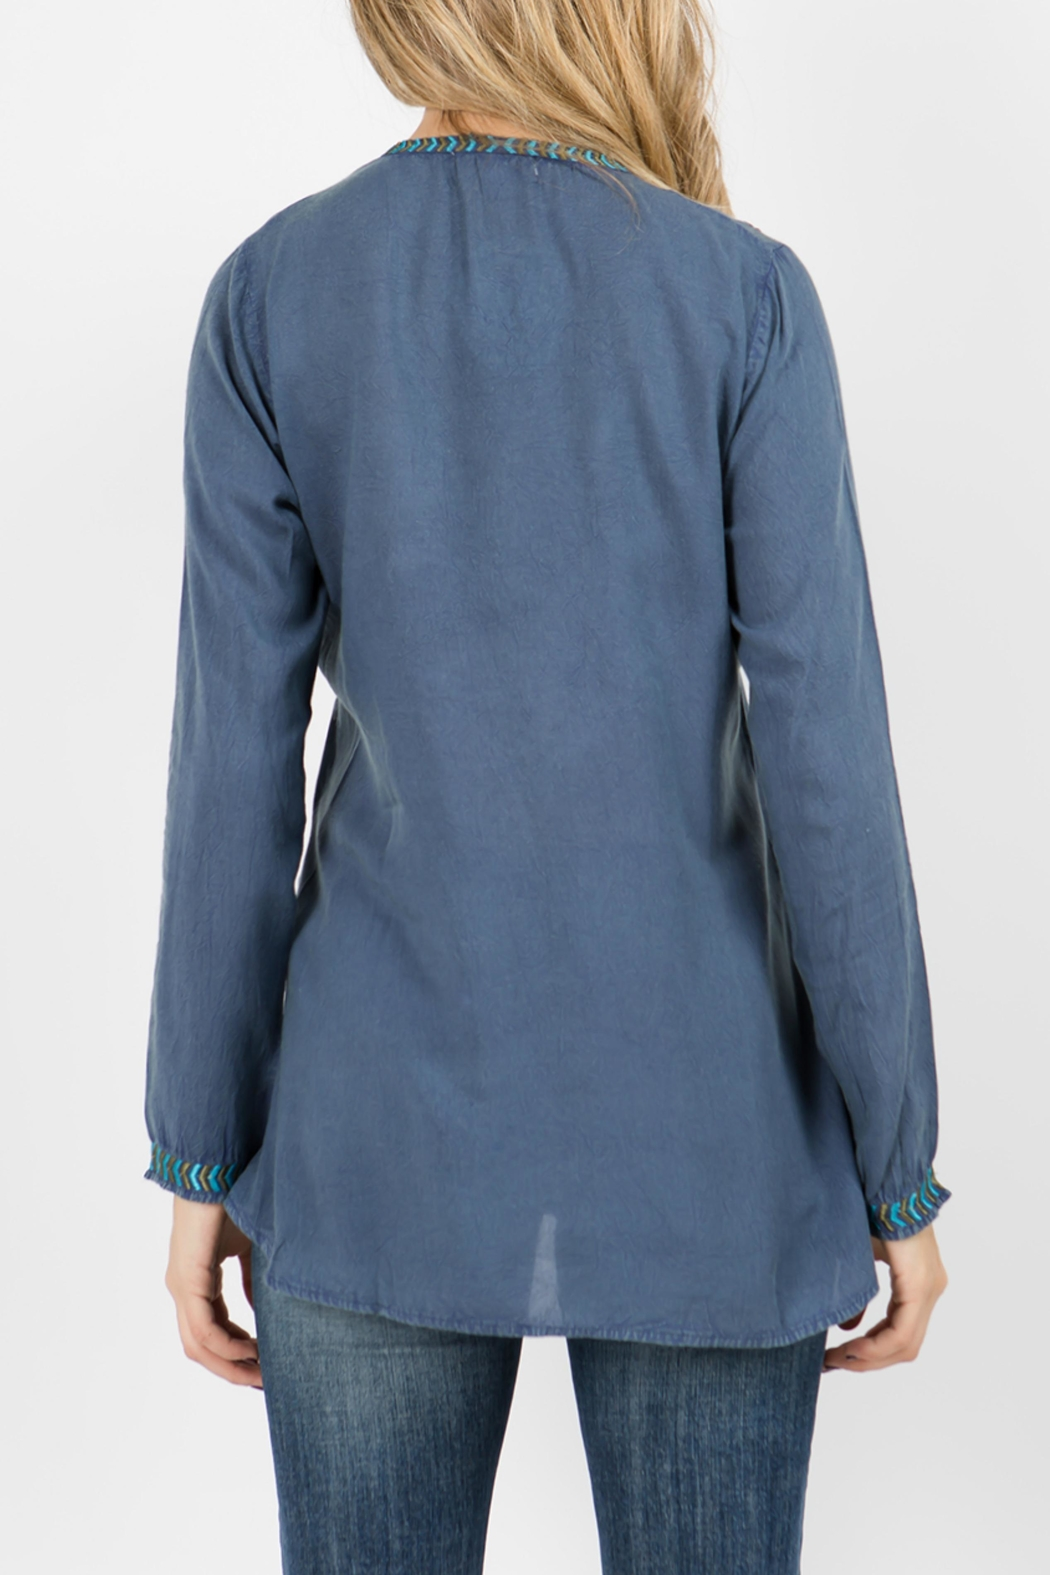 A&A Embroidered Tie Top - Side Cropped Image